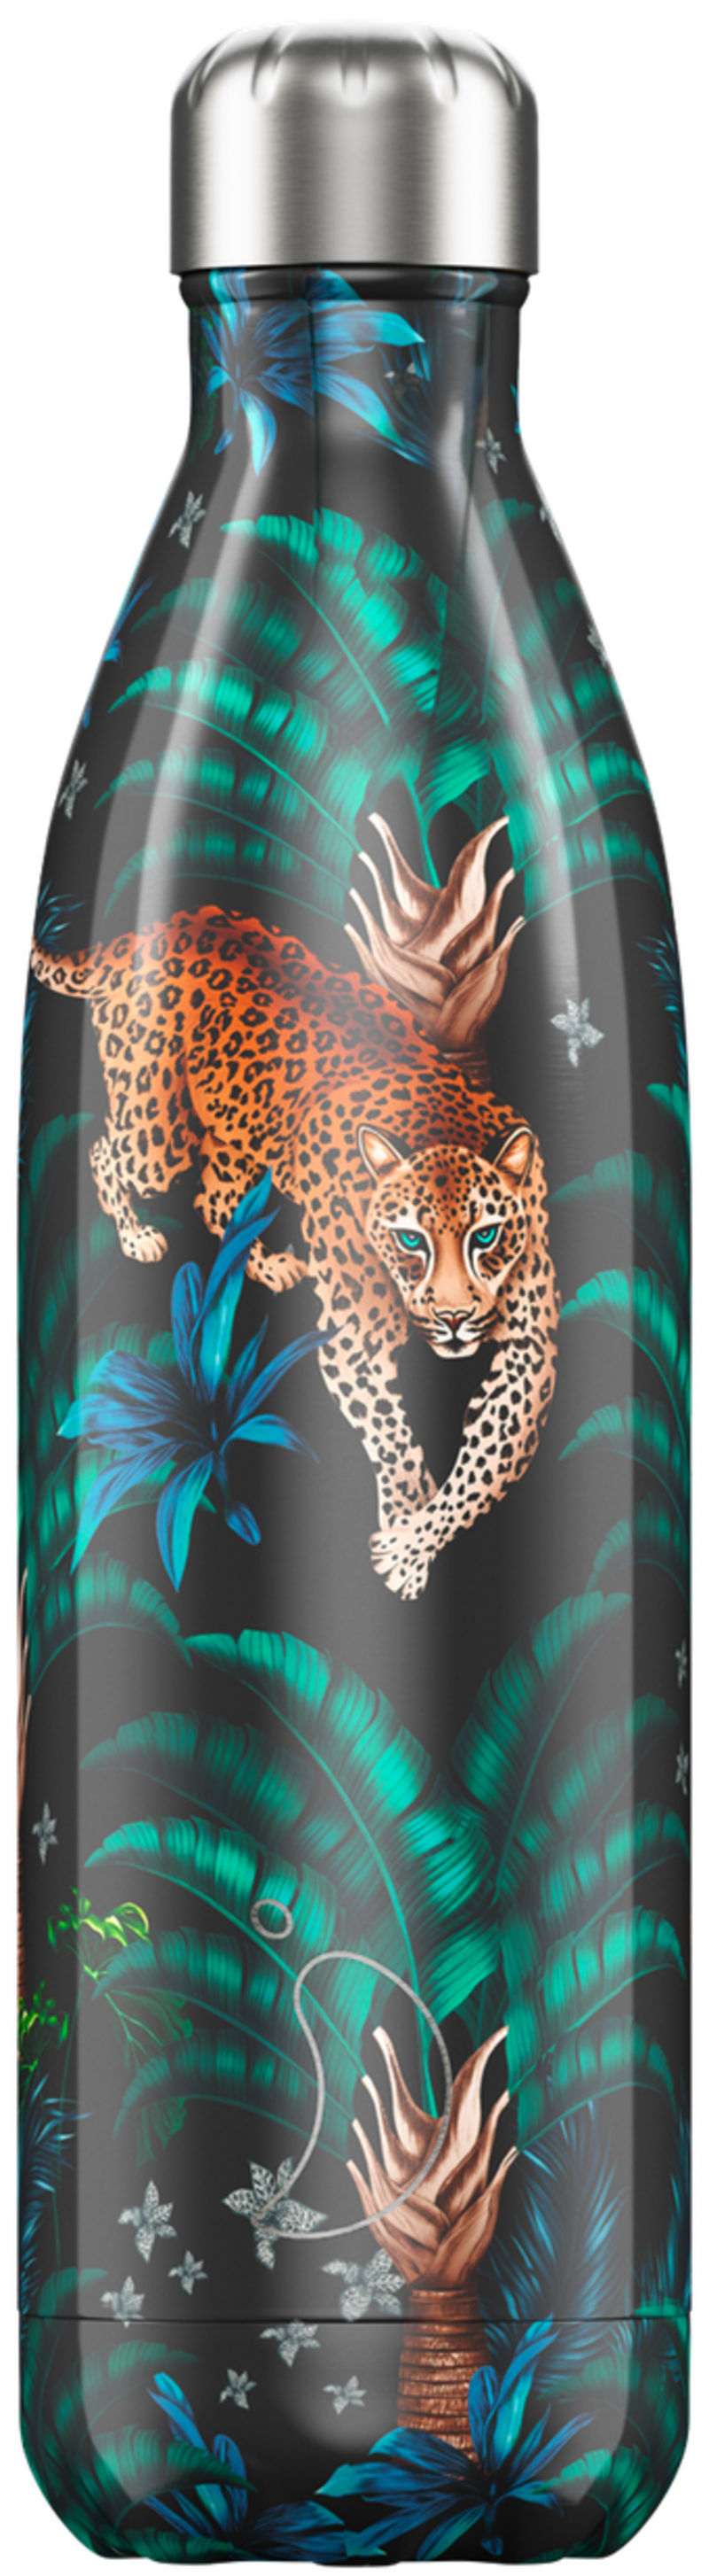 Botella Inox Leopardo 750ml -